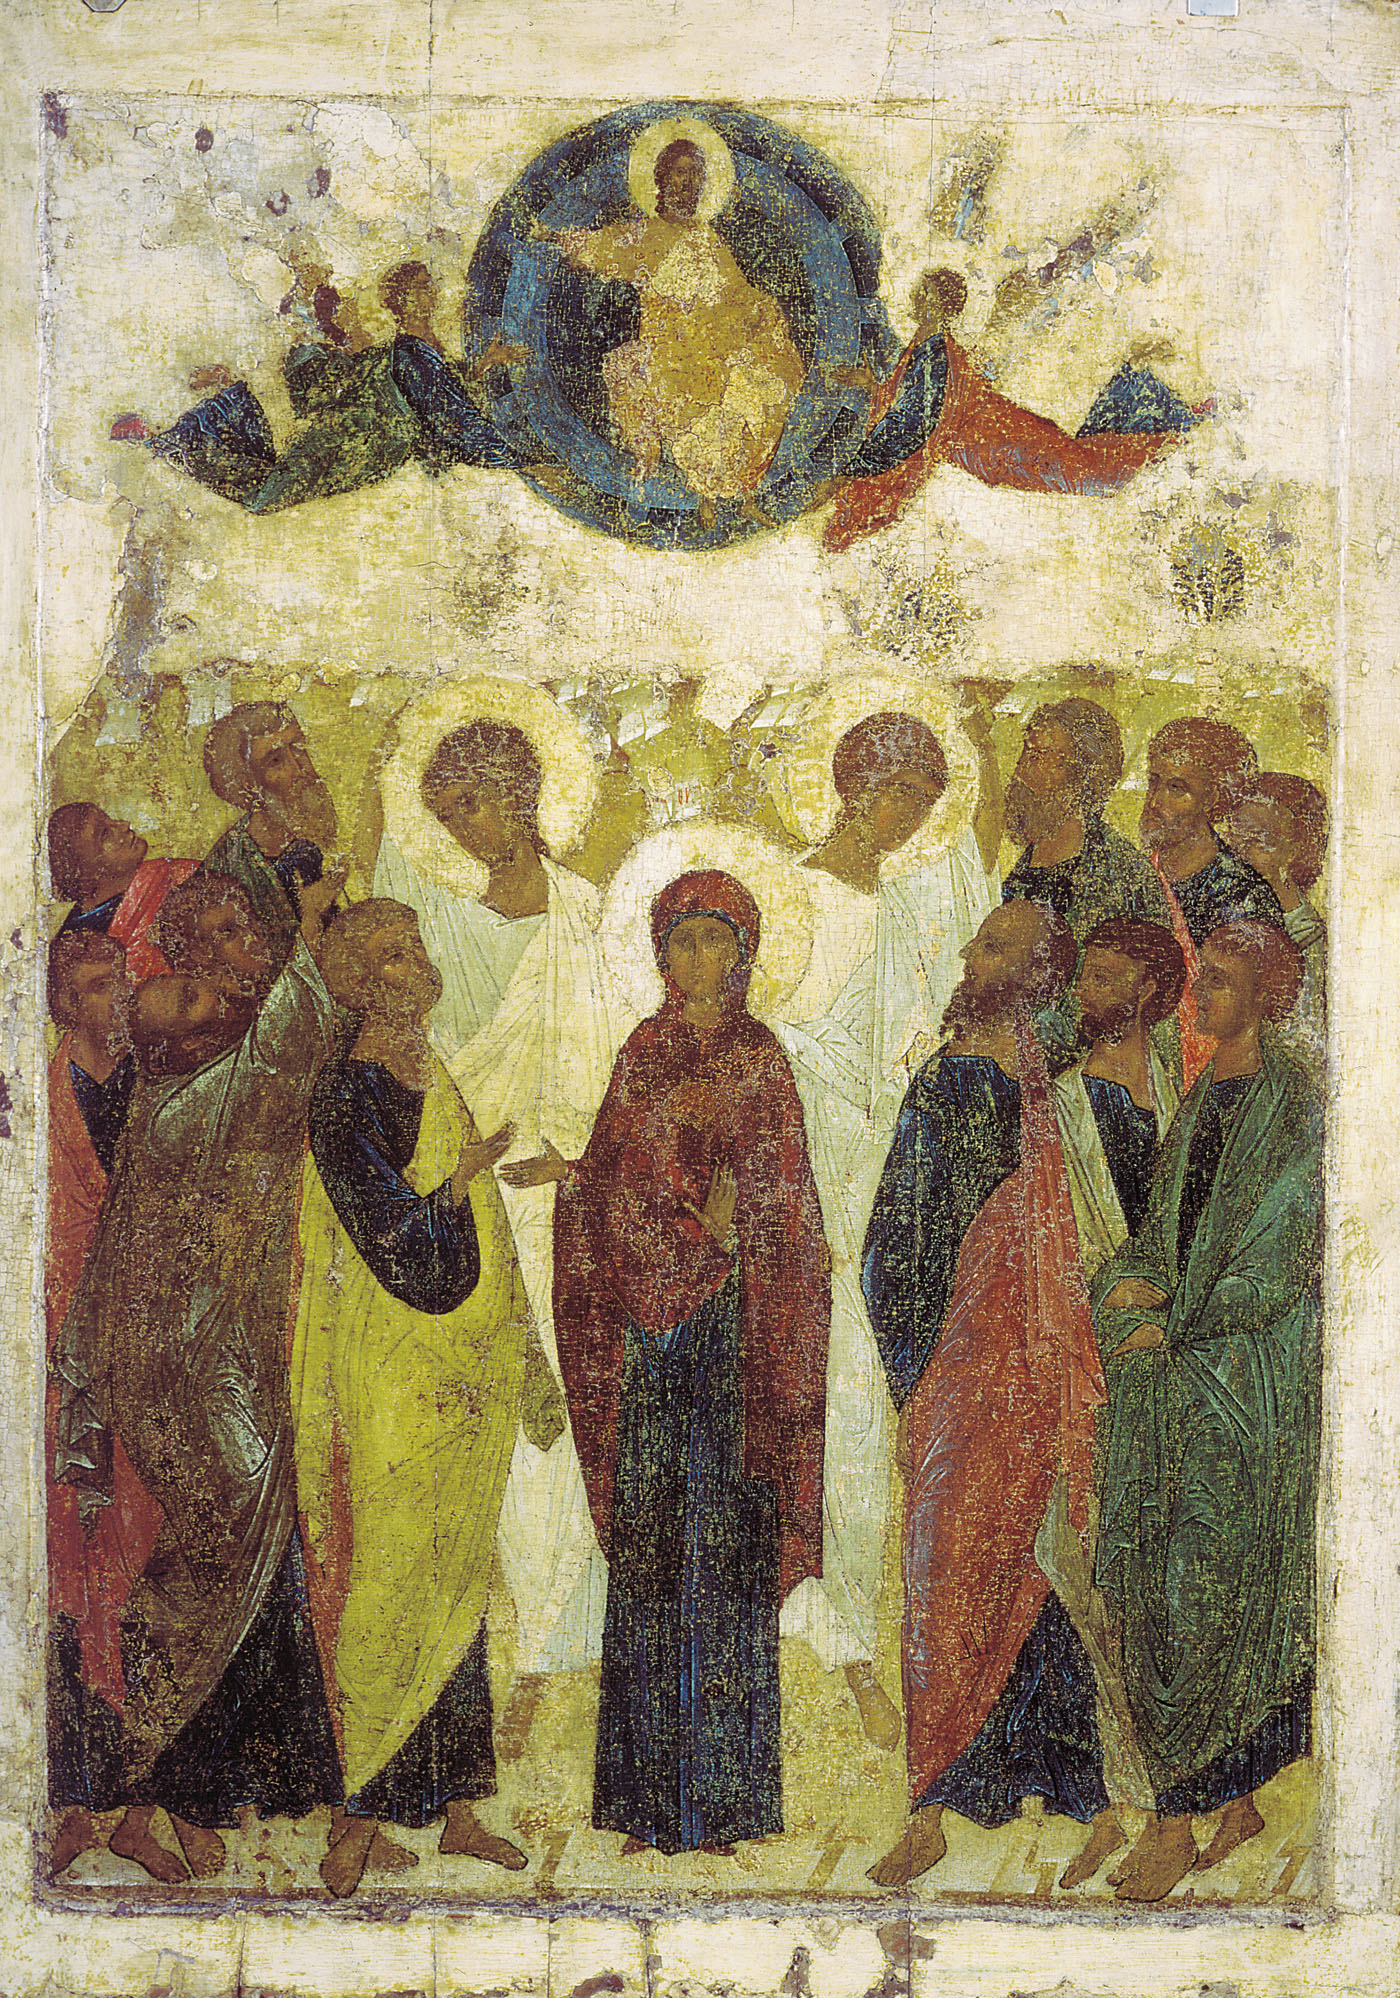 Ascension_of-Christ-from_Vasilyevskiy_chin_15th_c_GTG-Andrei-Rublev-year-1408AD